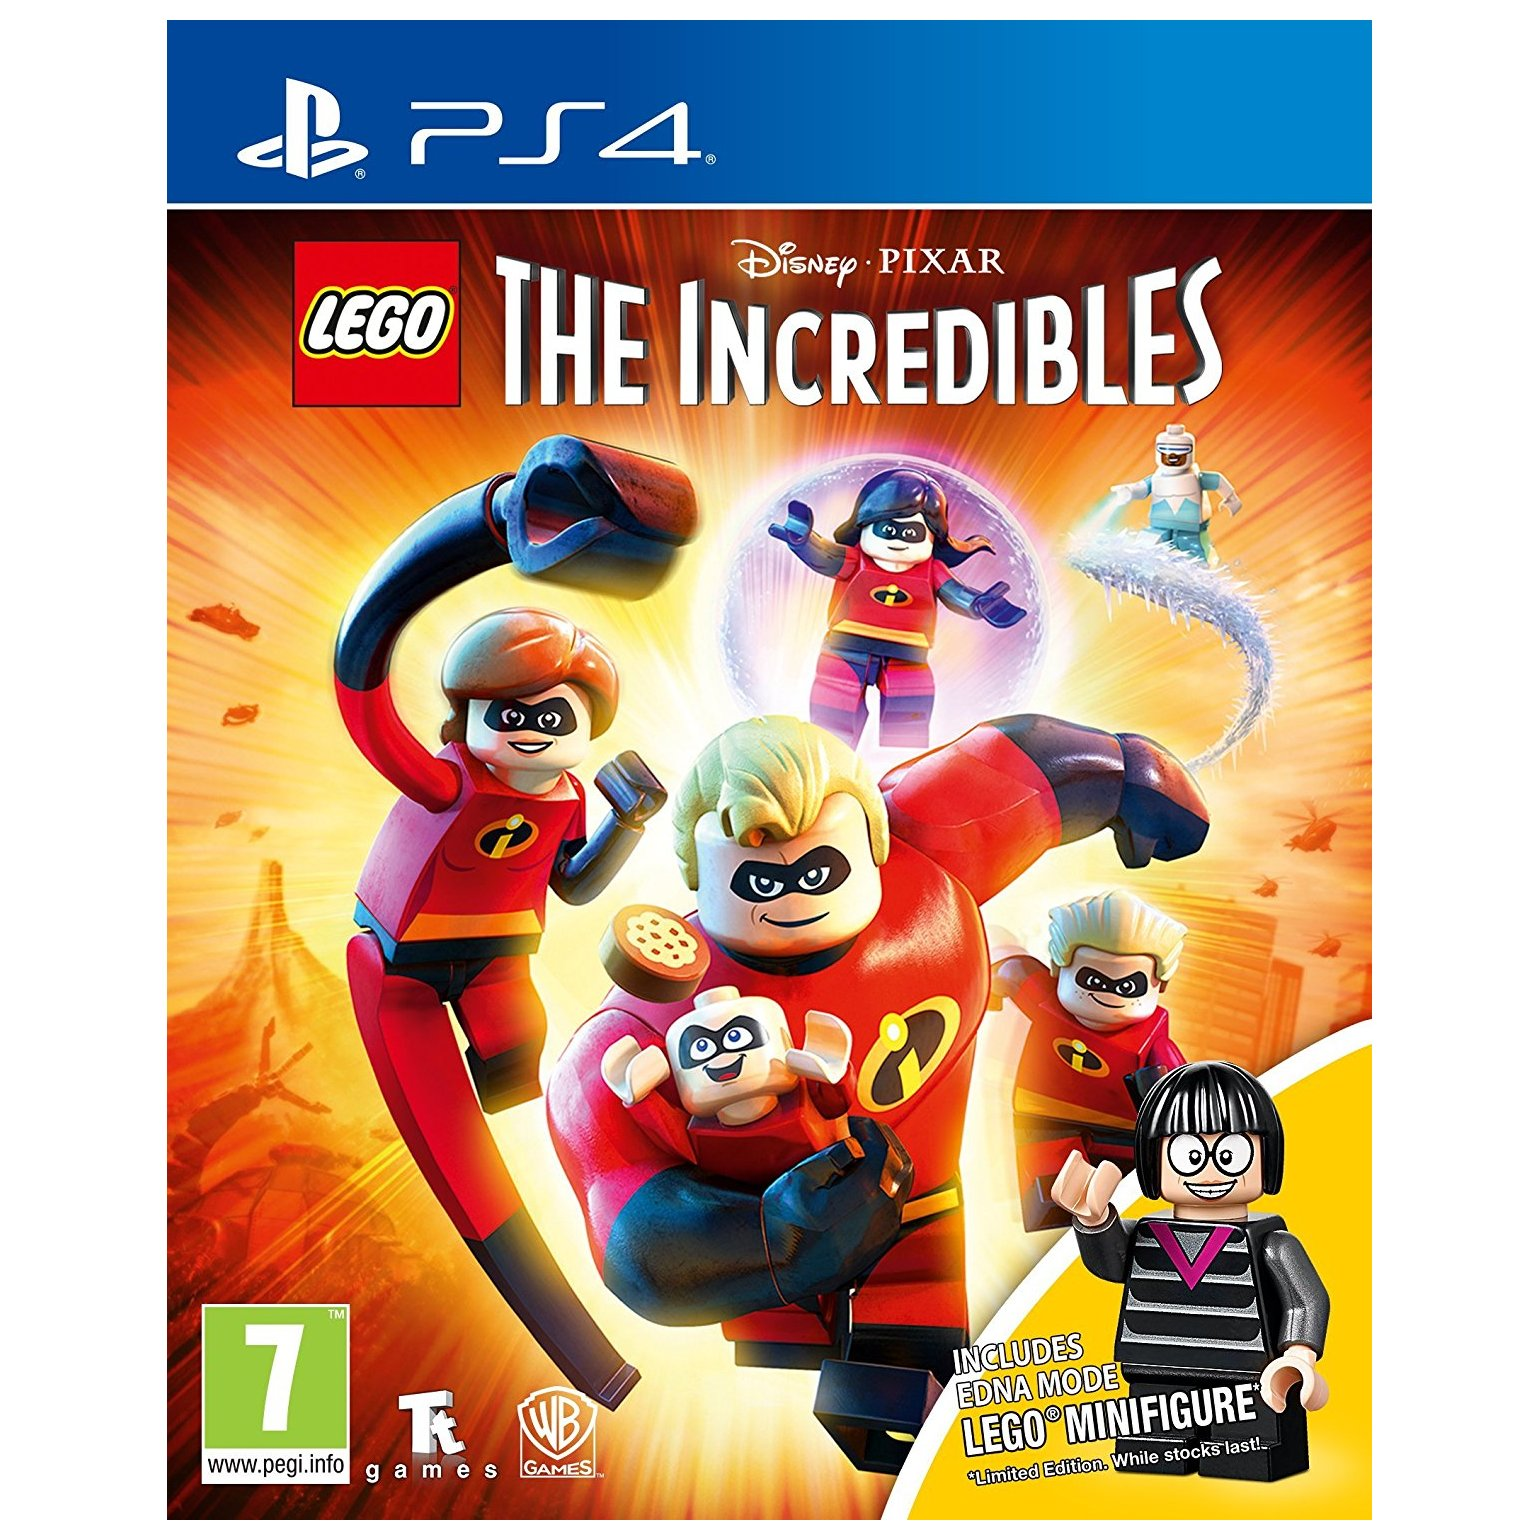 Ps4 Escapist 2 Game Price In Bahrain Buy Tekken 7 Region 3 Bonus Lego Toys The Incredibles Toy Edition